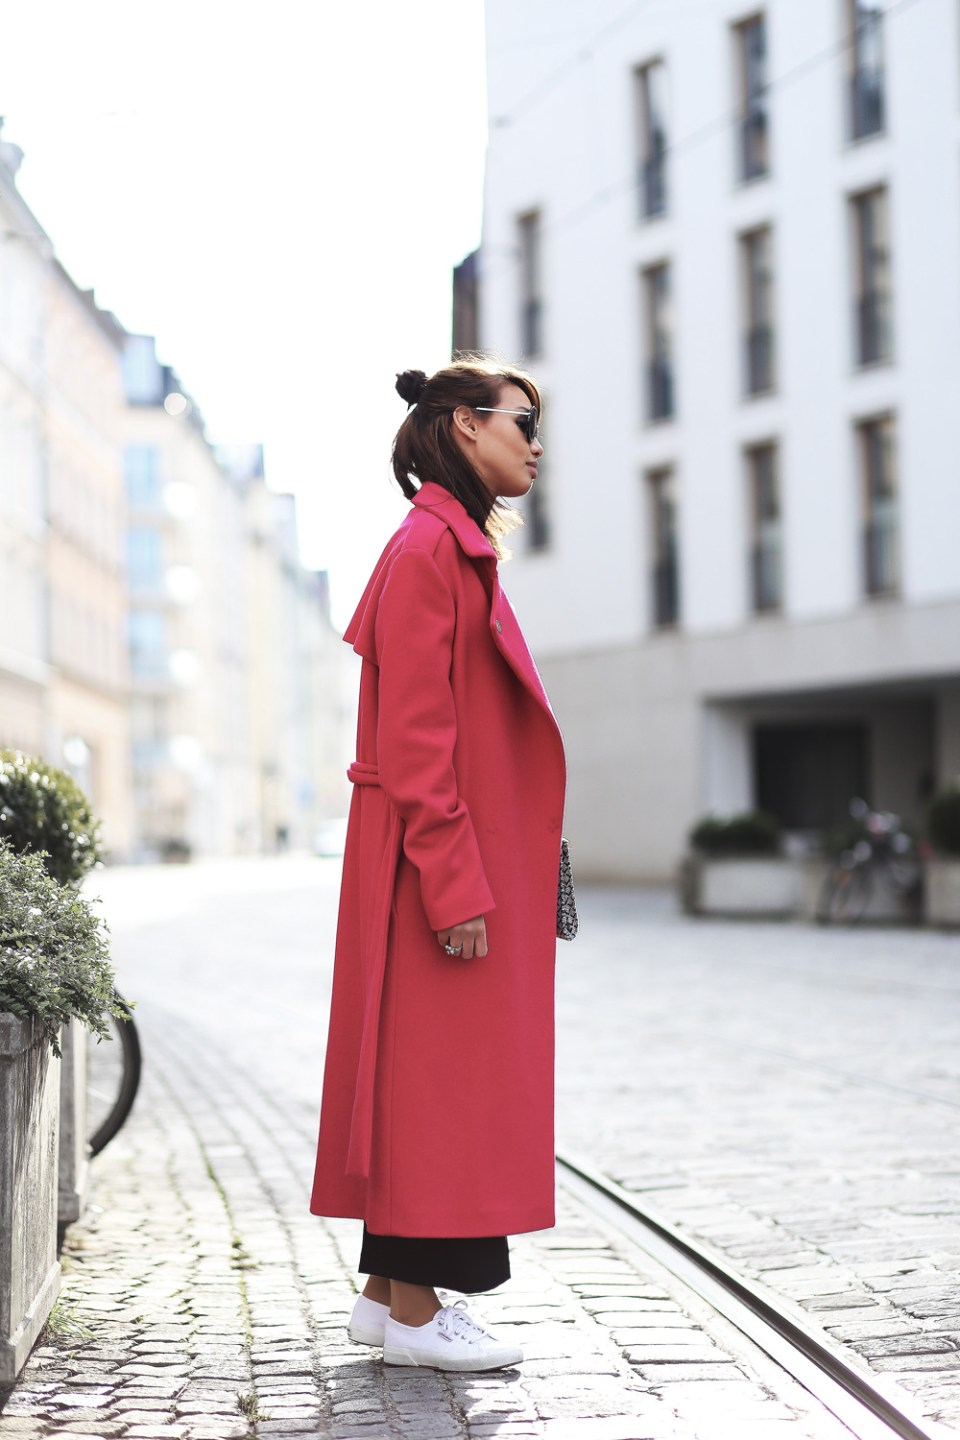 PINK-MANTEL-COAT-LACE-OVERALL-CULOTTES-SUPERGA-ZARA-THEFASHIONANARCHY-LOOK-STYLE-OUTFIT-SNEAKER-BLACK-SPITZE-FASHIONBLOG-MODEBLOG-STYLEBLOG-MUNICH-DIANABUENGER-8